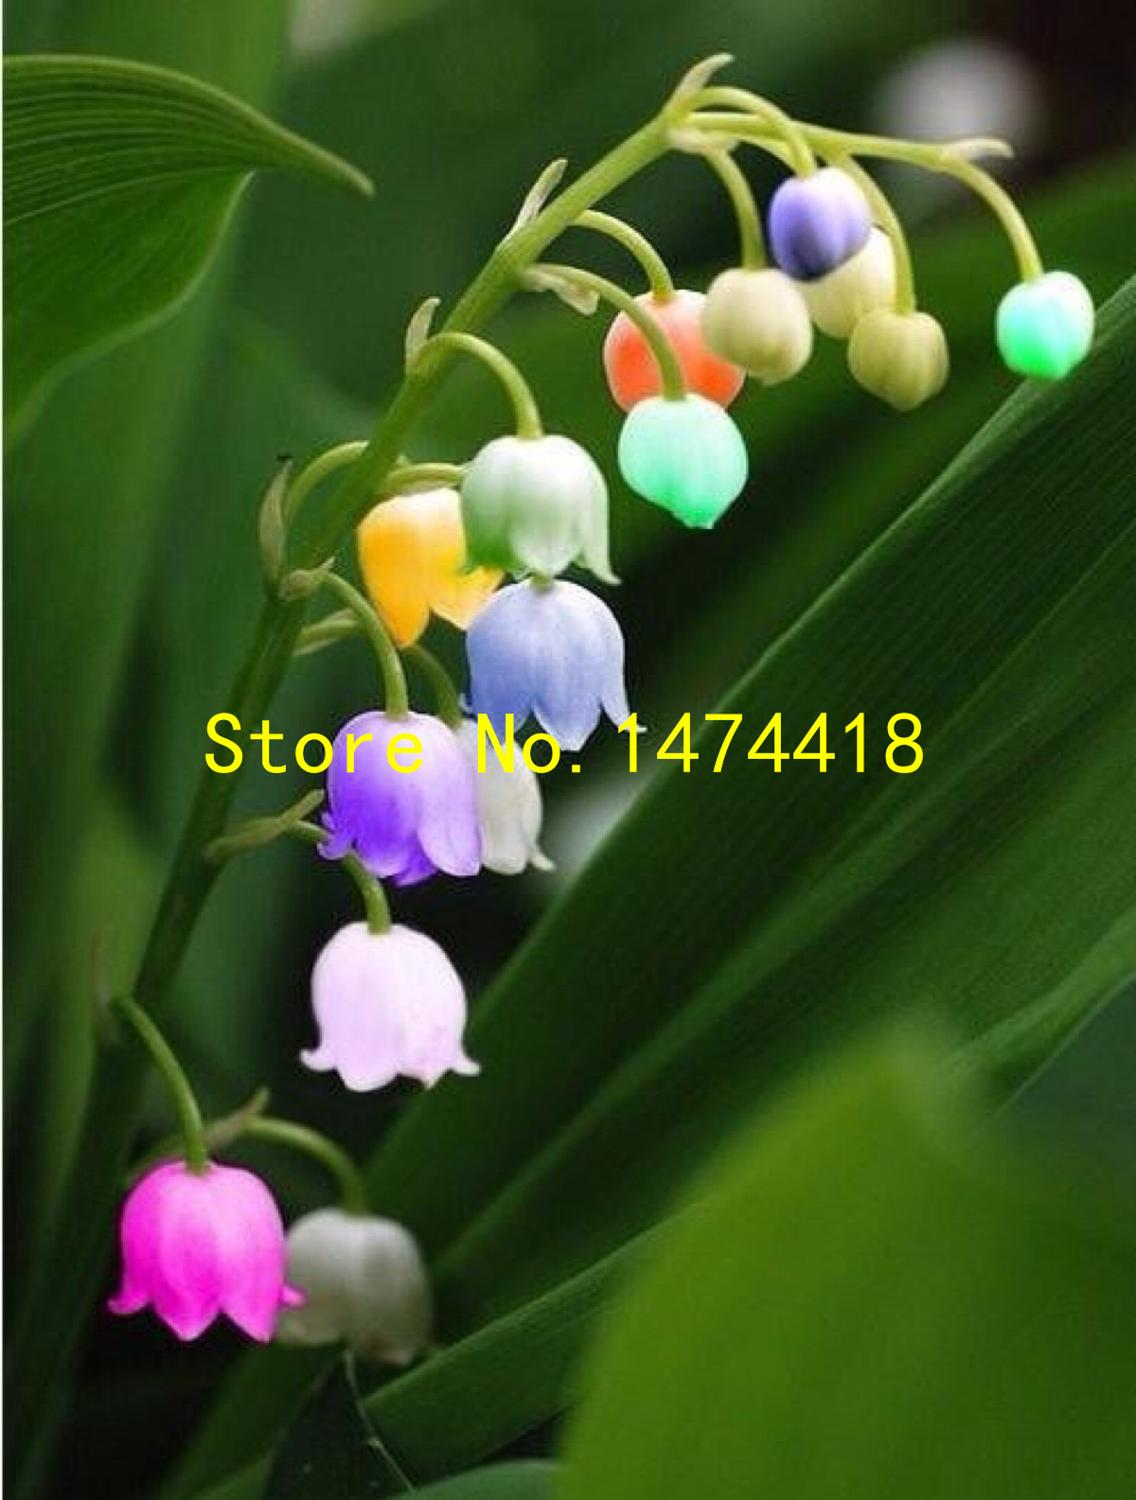 White lily of the valley flower convallaria majalis seeds rich aroma white lily of the valley flower convallaria majalis seeds rich aroma bonsai flower seed and beautiful 100 particles lot in bonsai from home garden on izmirmasajfo